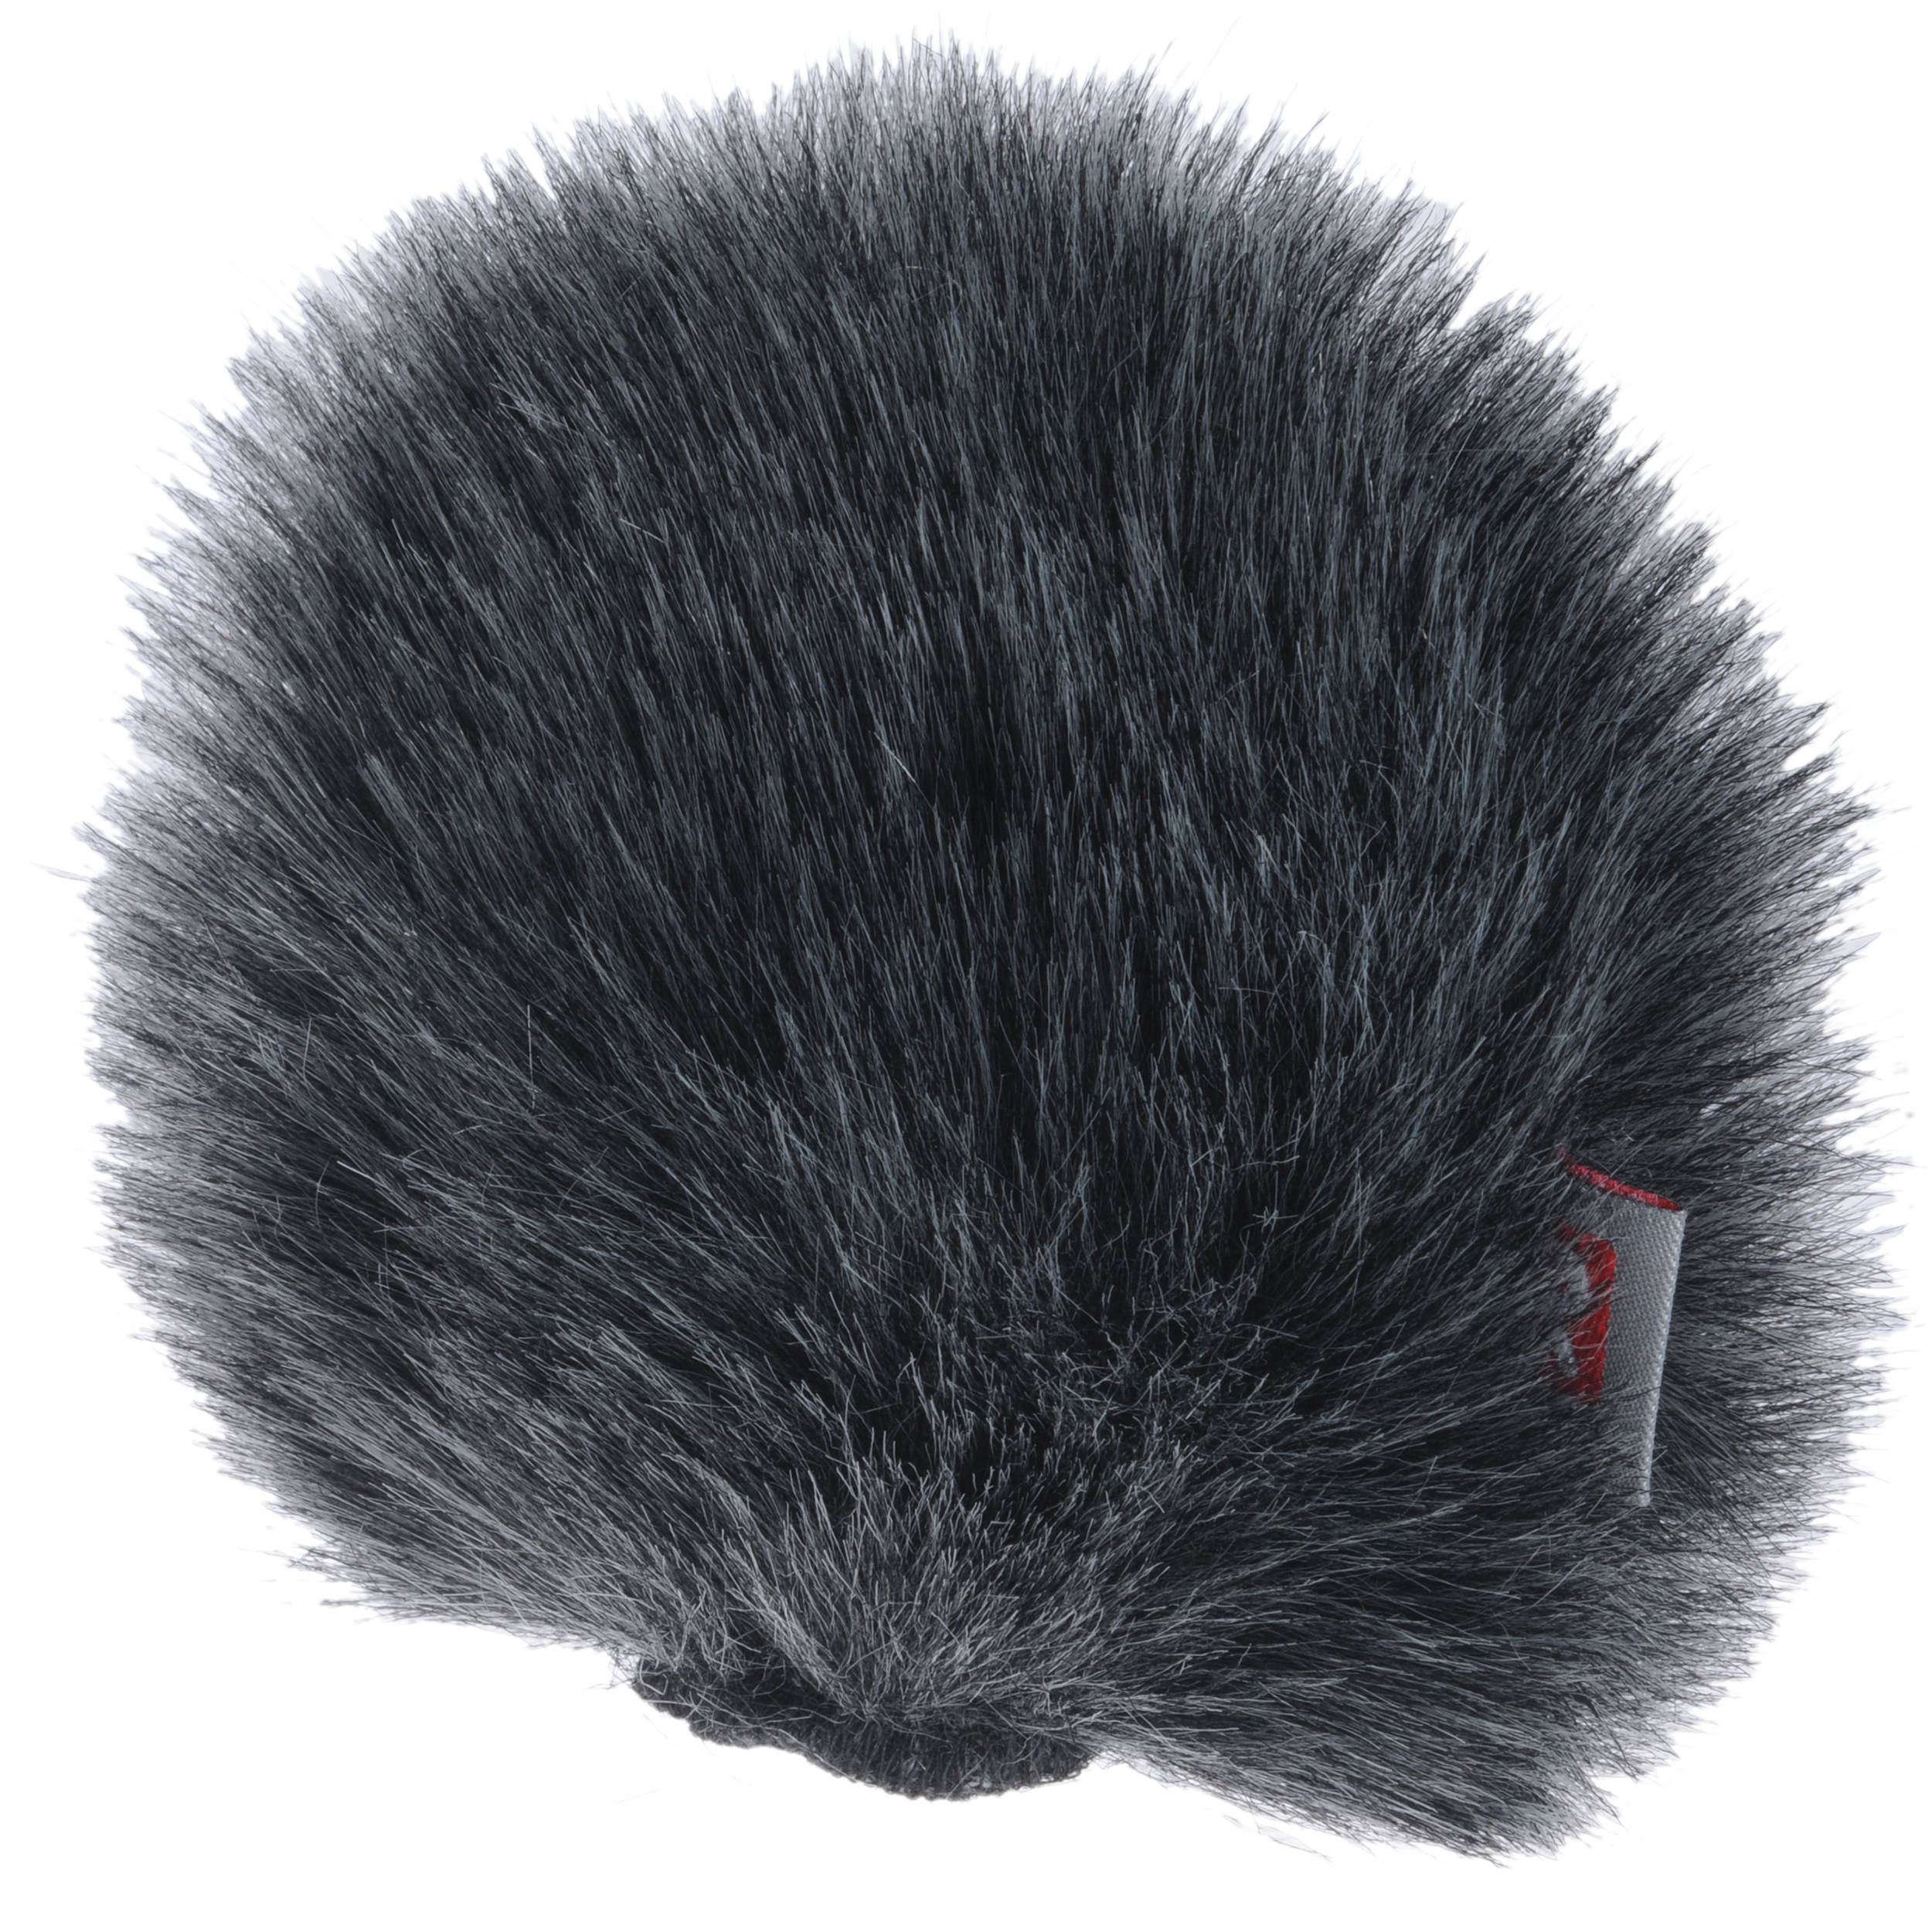 Rycote Mini Windjammer for Olympus LS-100